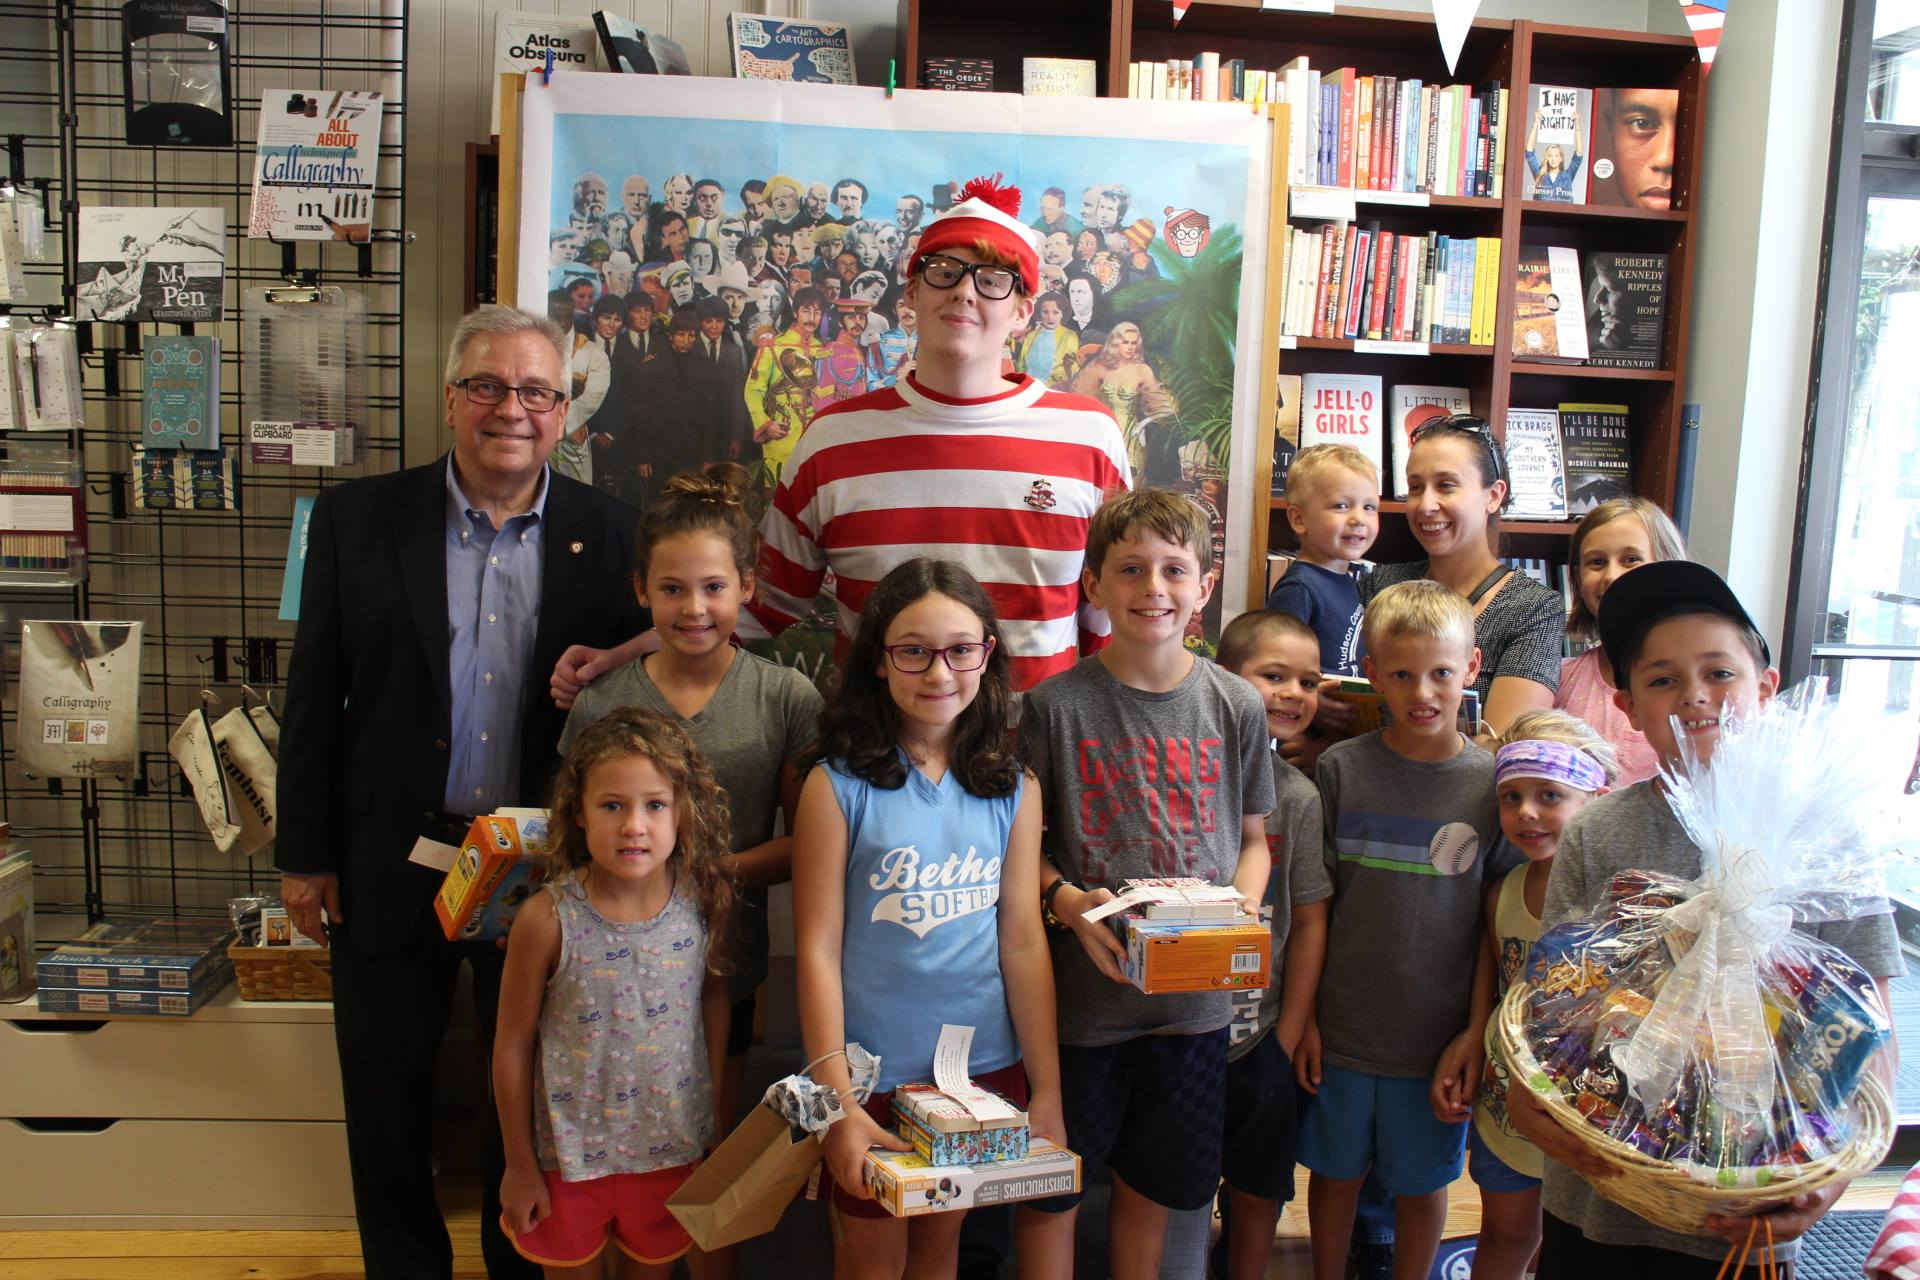 The grand prize winners pose with First Selectman Matthew Knickerbocker at Byrd's Books.